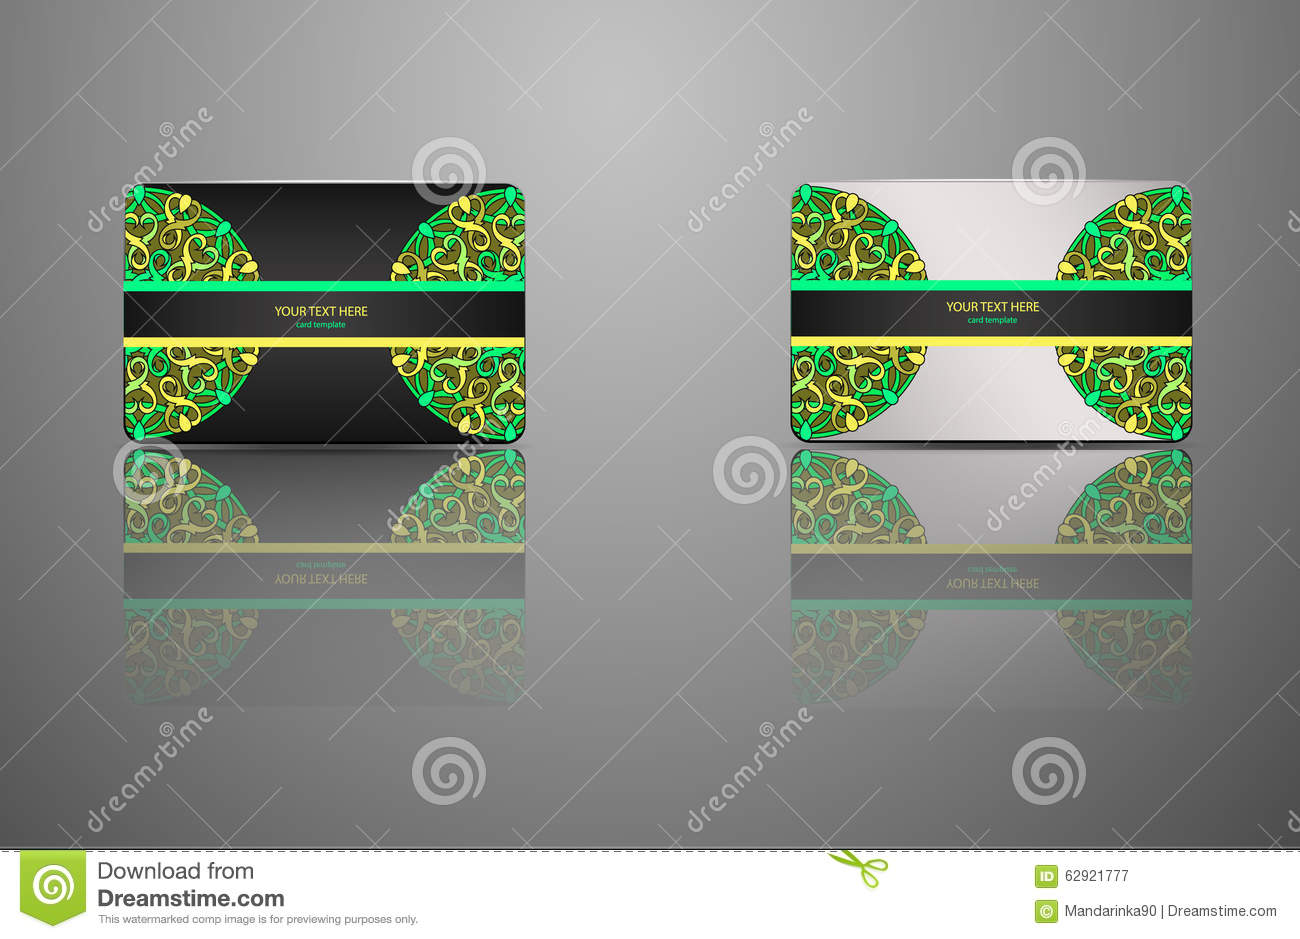 Template gift card credit card business card an invitation download template gift card credit card business card an invitation mandala stock fbccfo Images